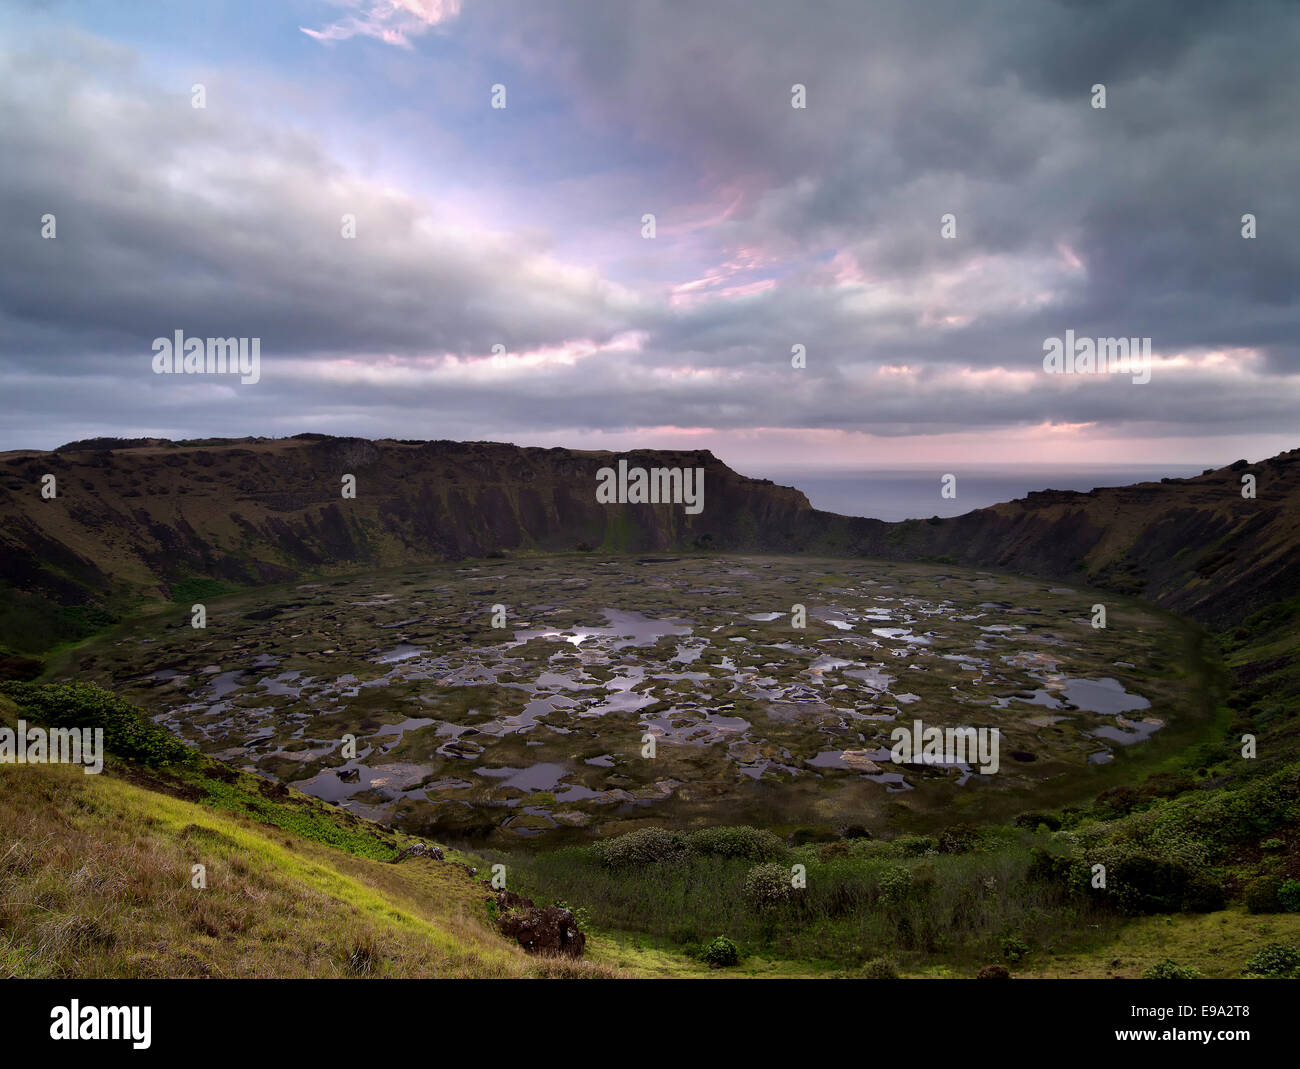 View of the crater of an extinct volcano on Easter Island, Chile, Latin America. - Stock Image